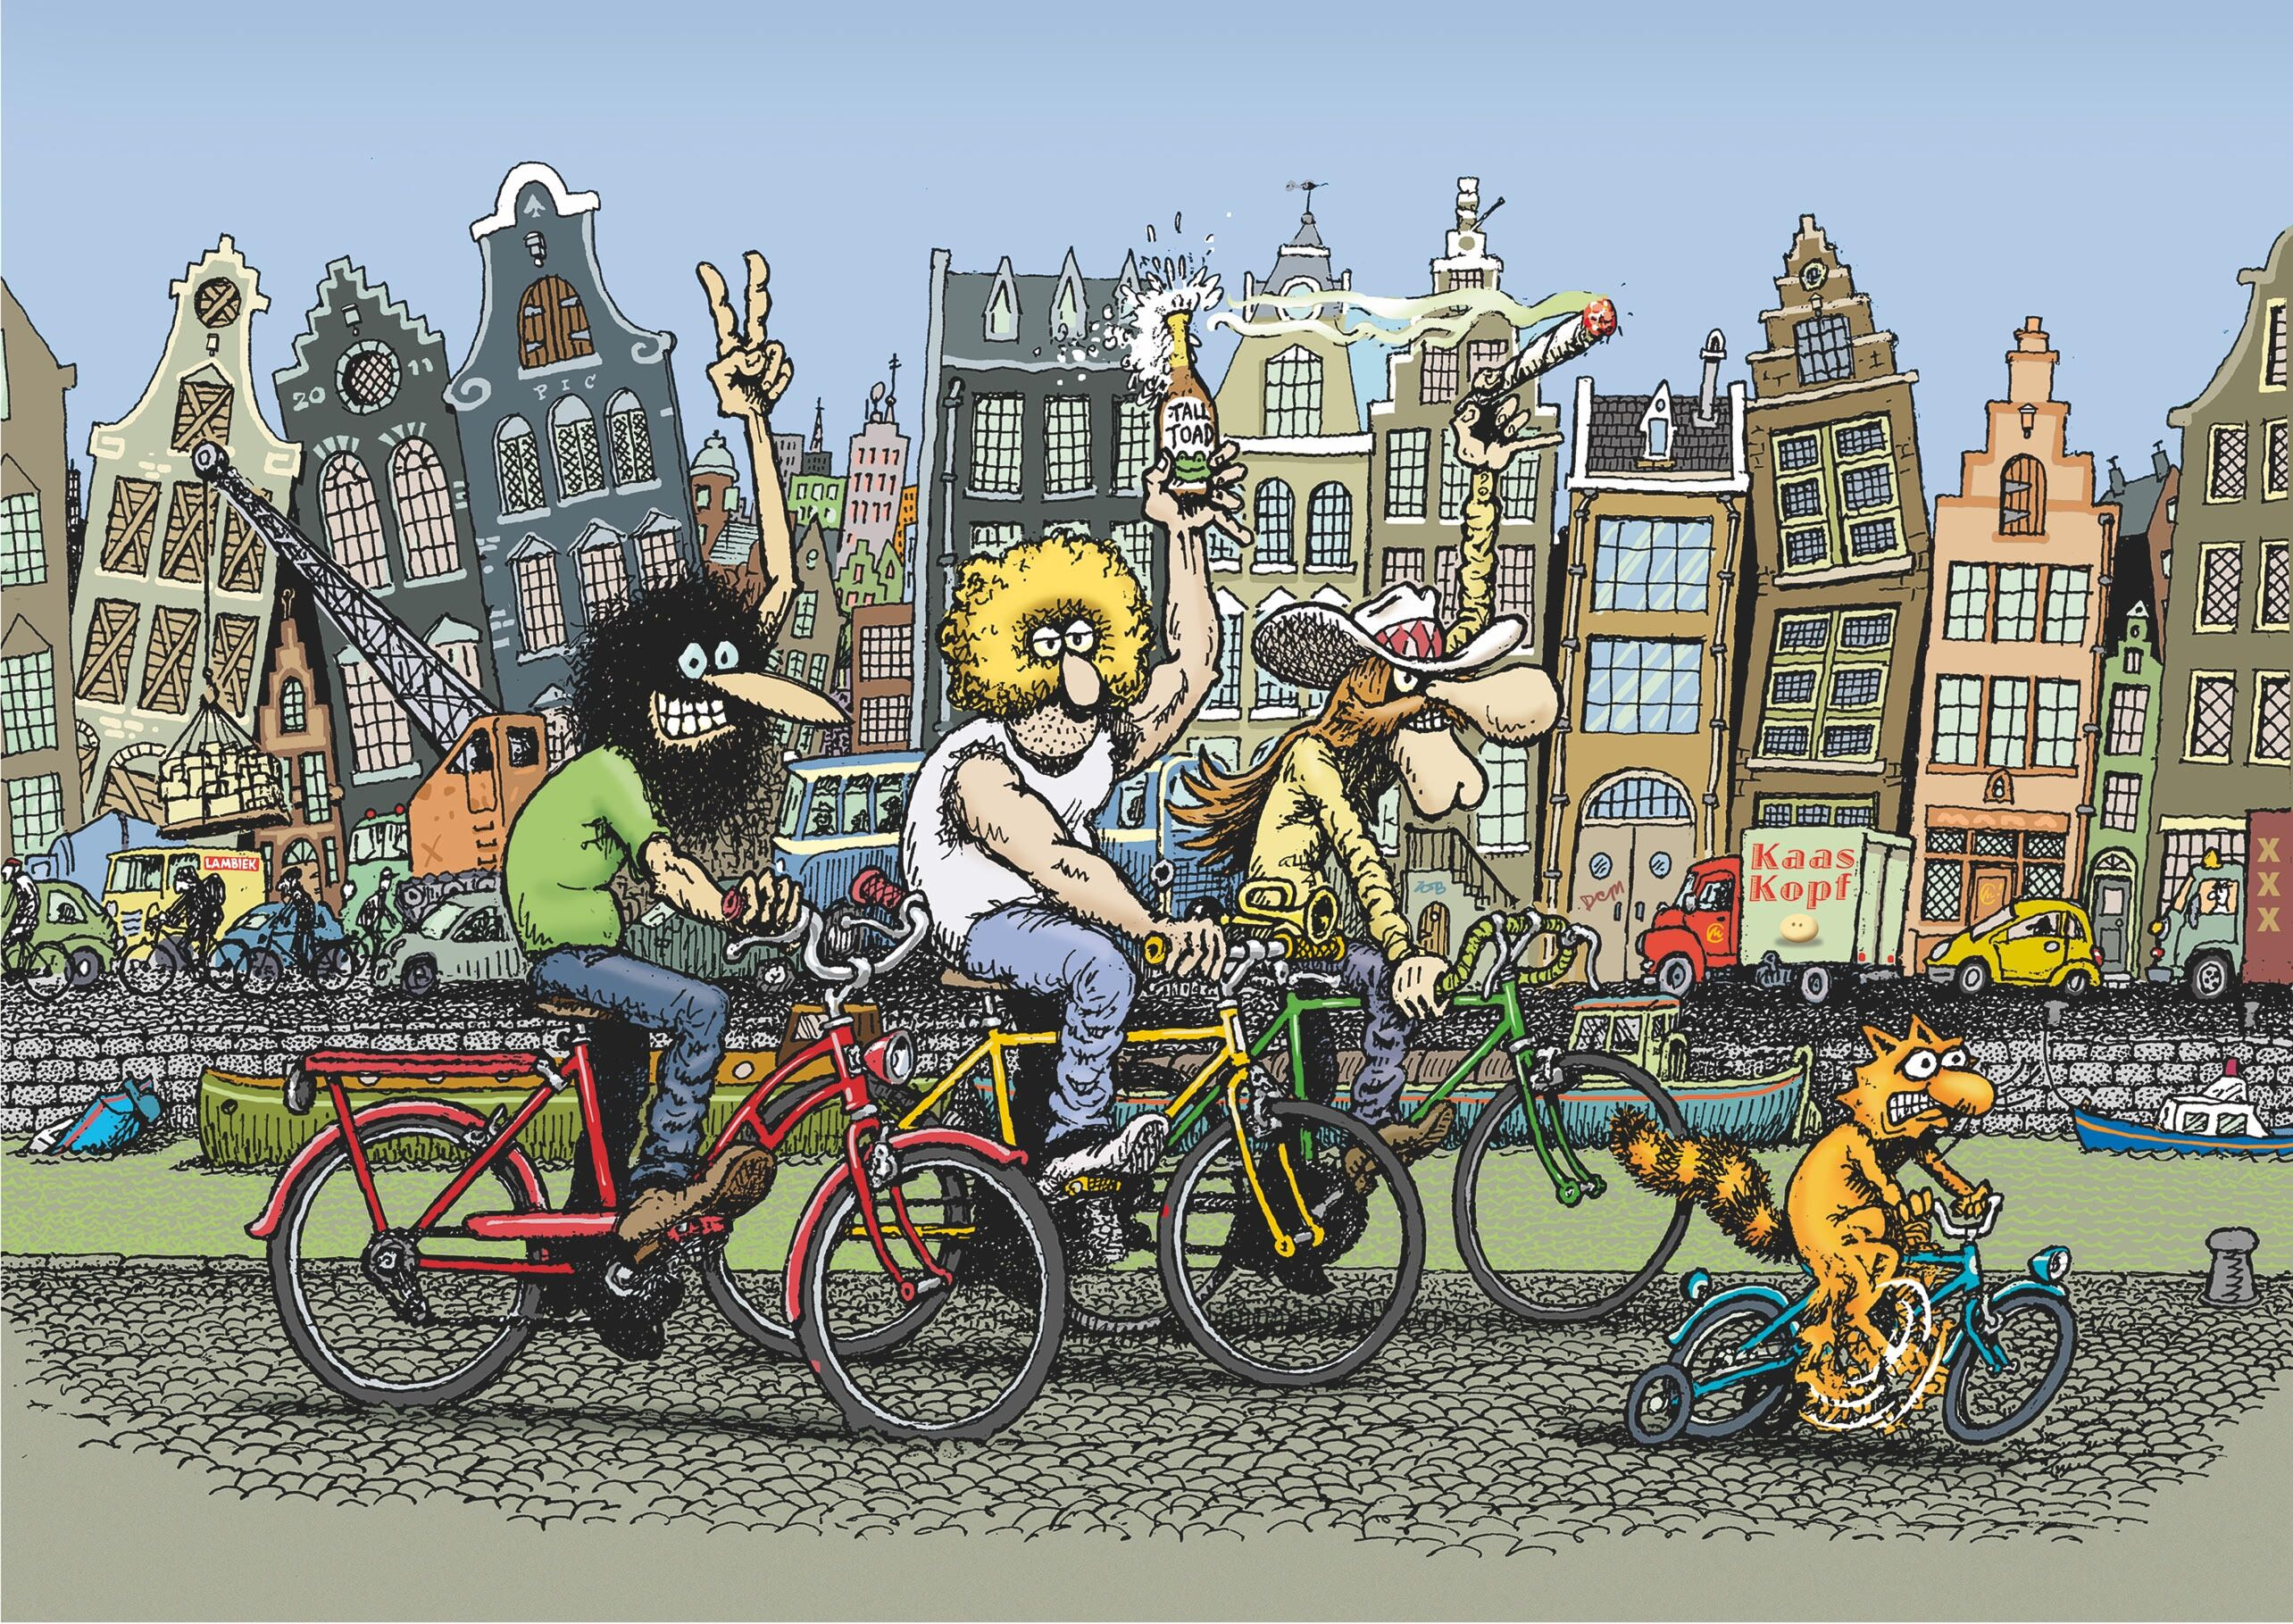 The Fabulous Furry Freak Brothers is (finally) getting an animated series